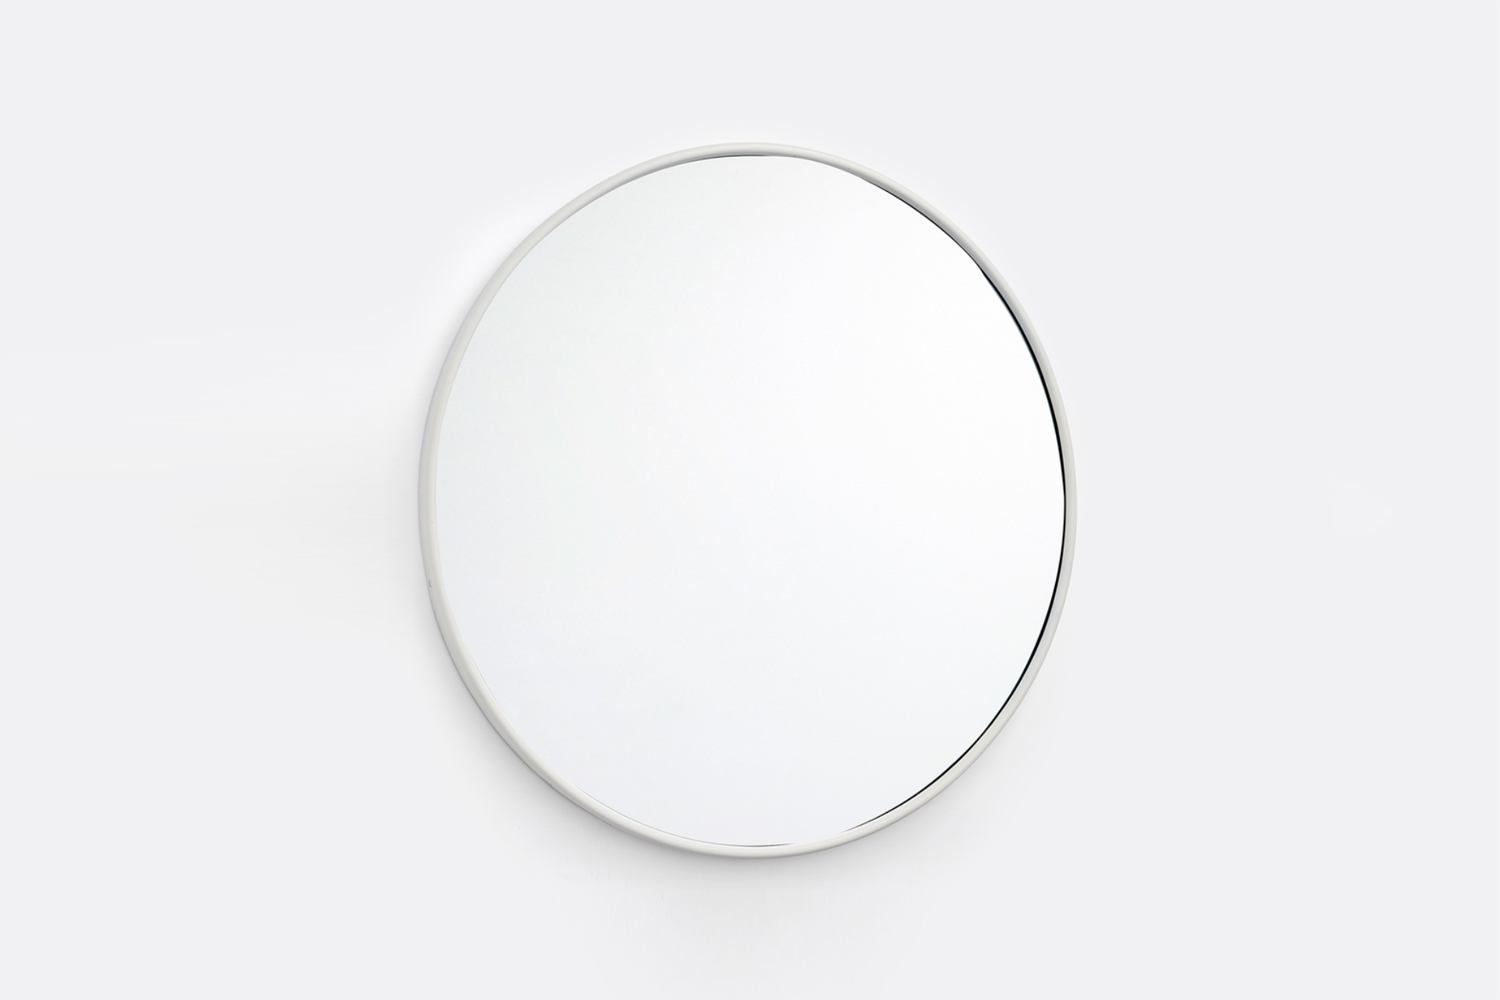 The Round Modern Powder Coated Framed Mirror is $loading=